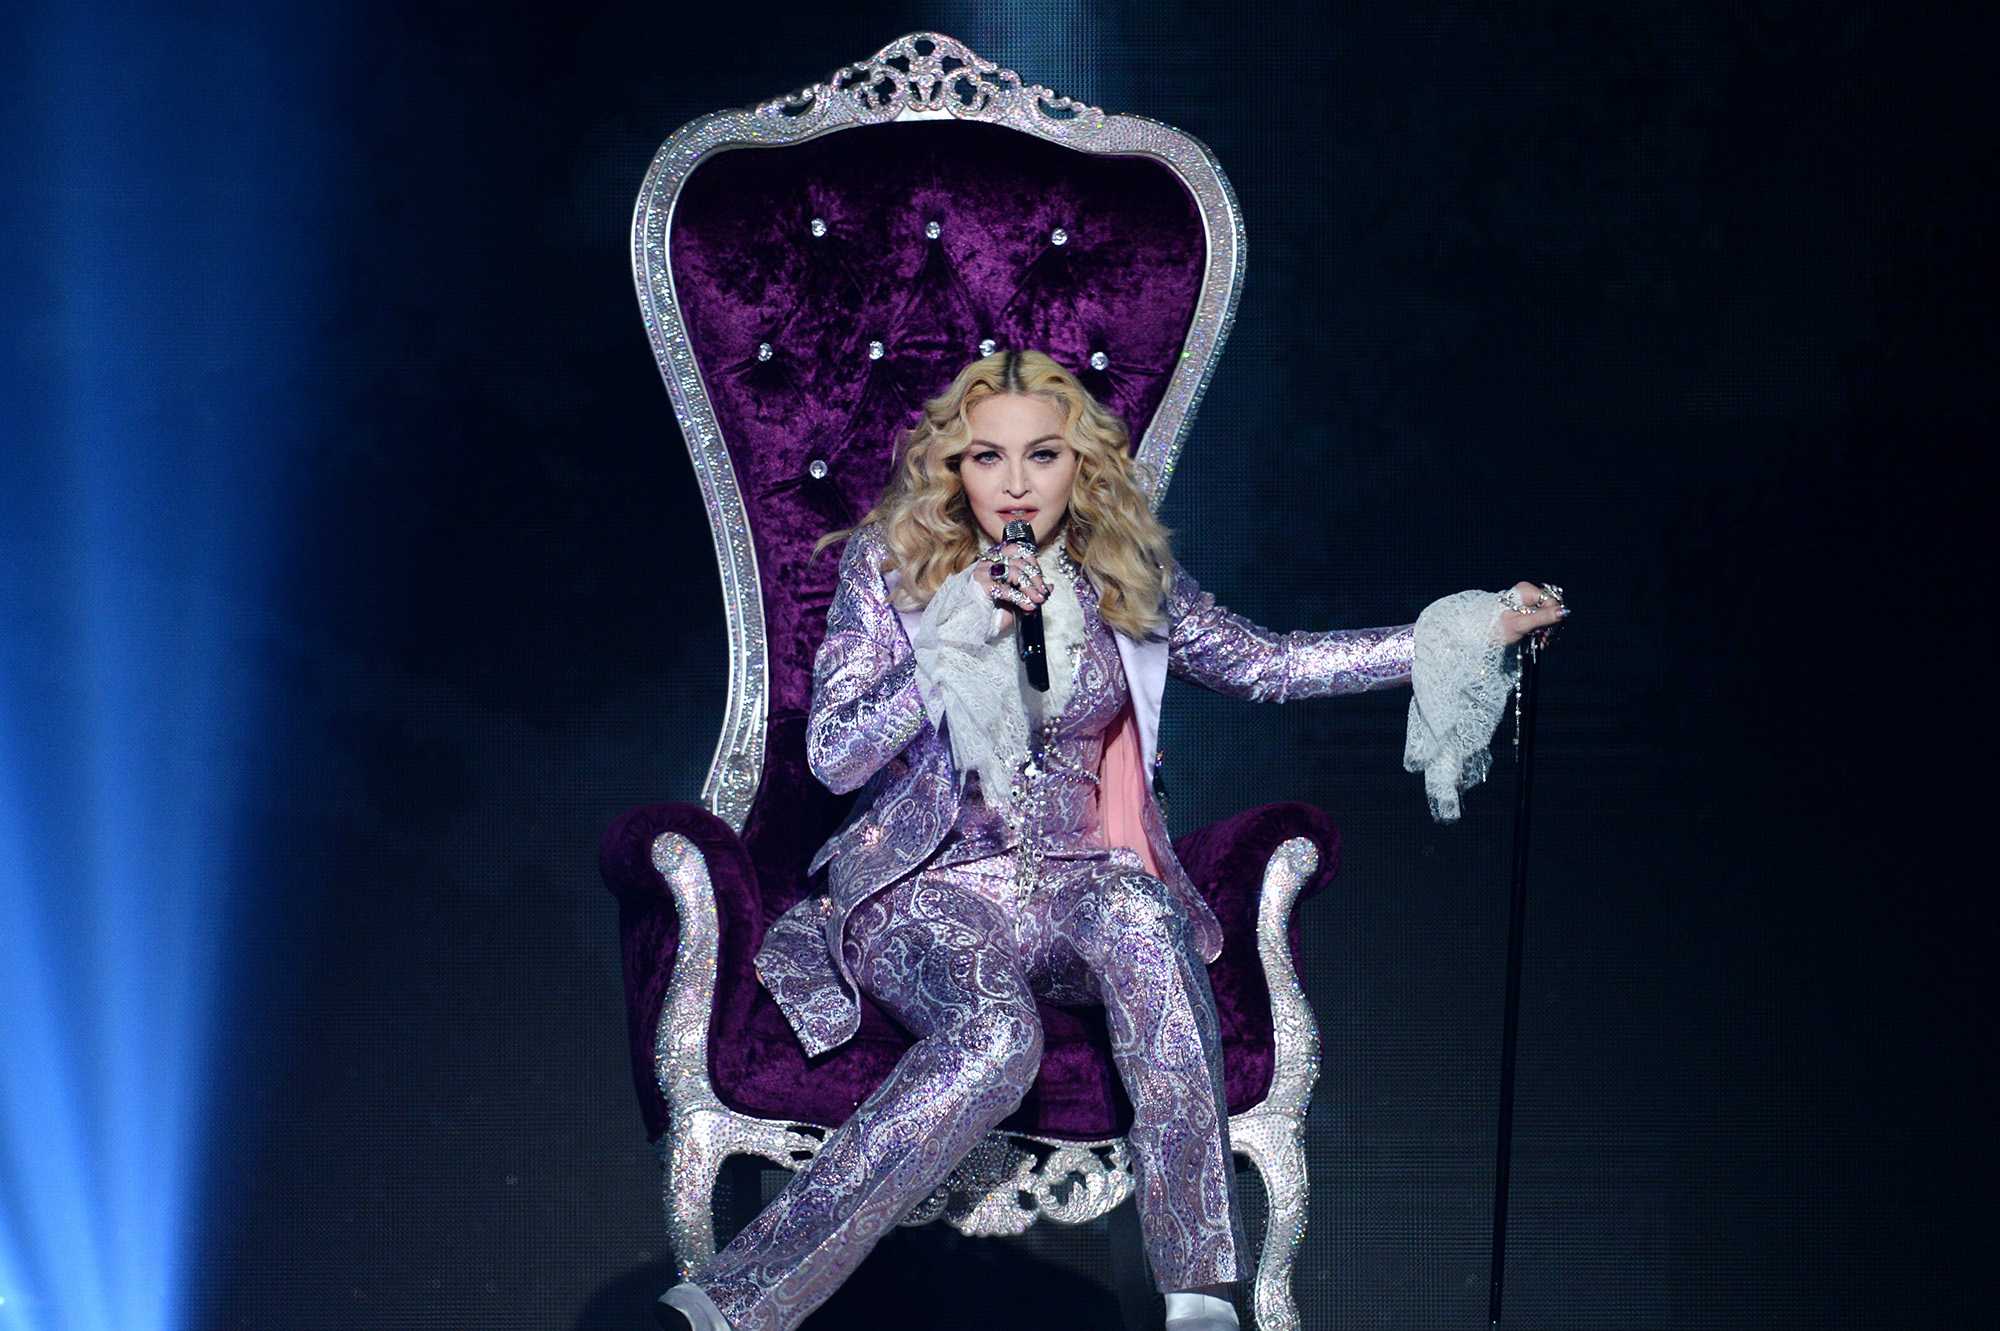 Madonna performs a tribute to Prince onstage during the 2016 Billboard Music Awards on May 22, 2016.